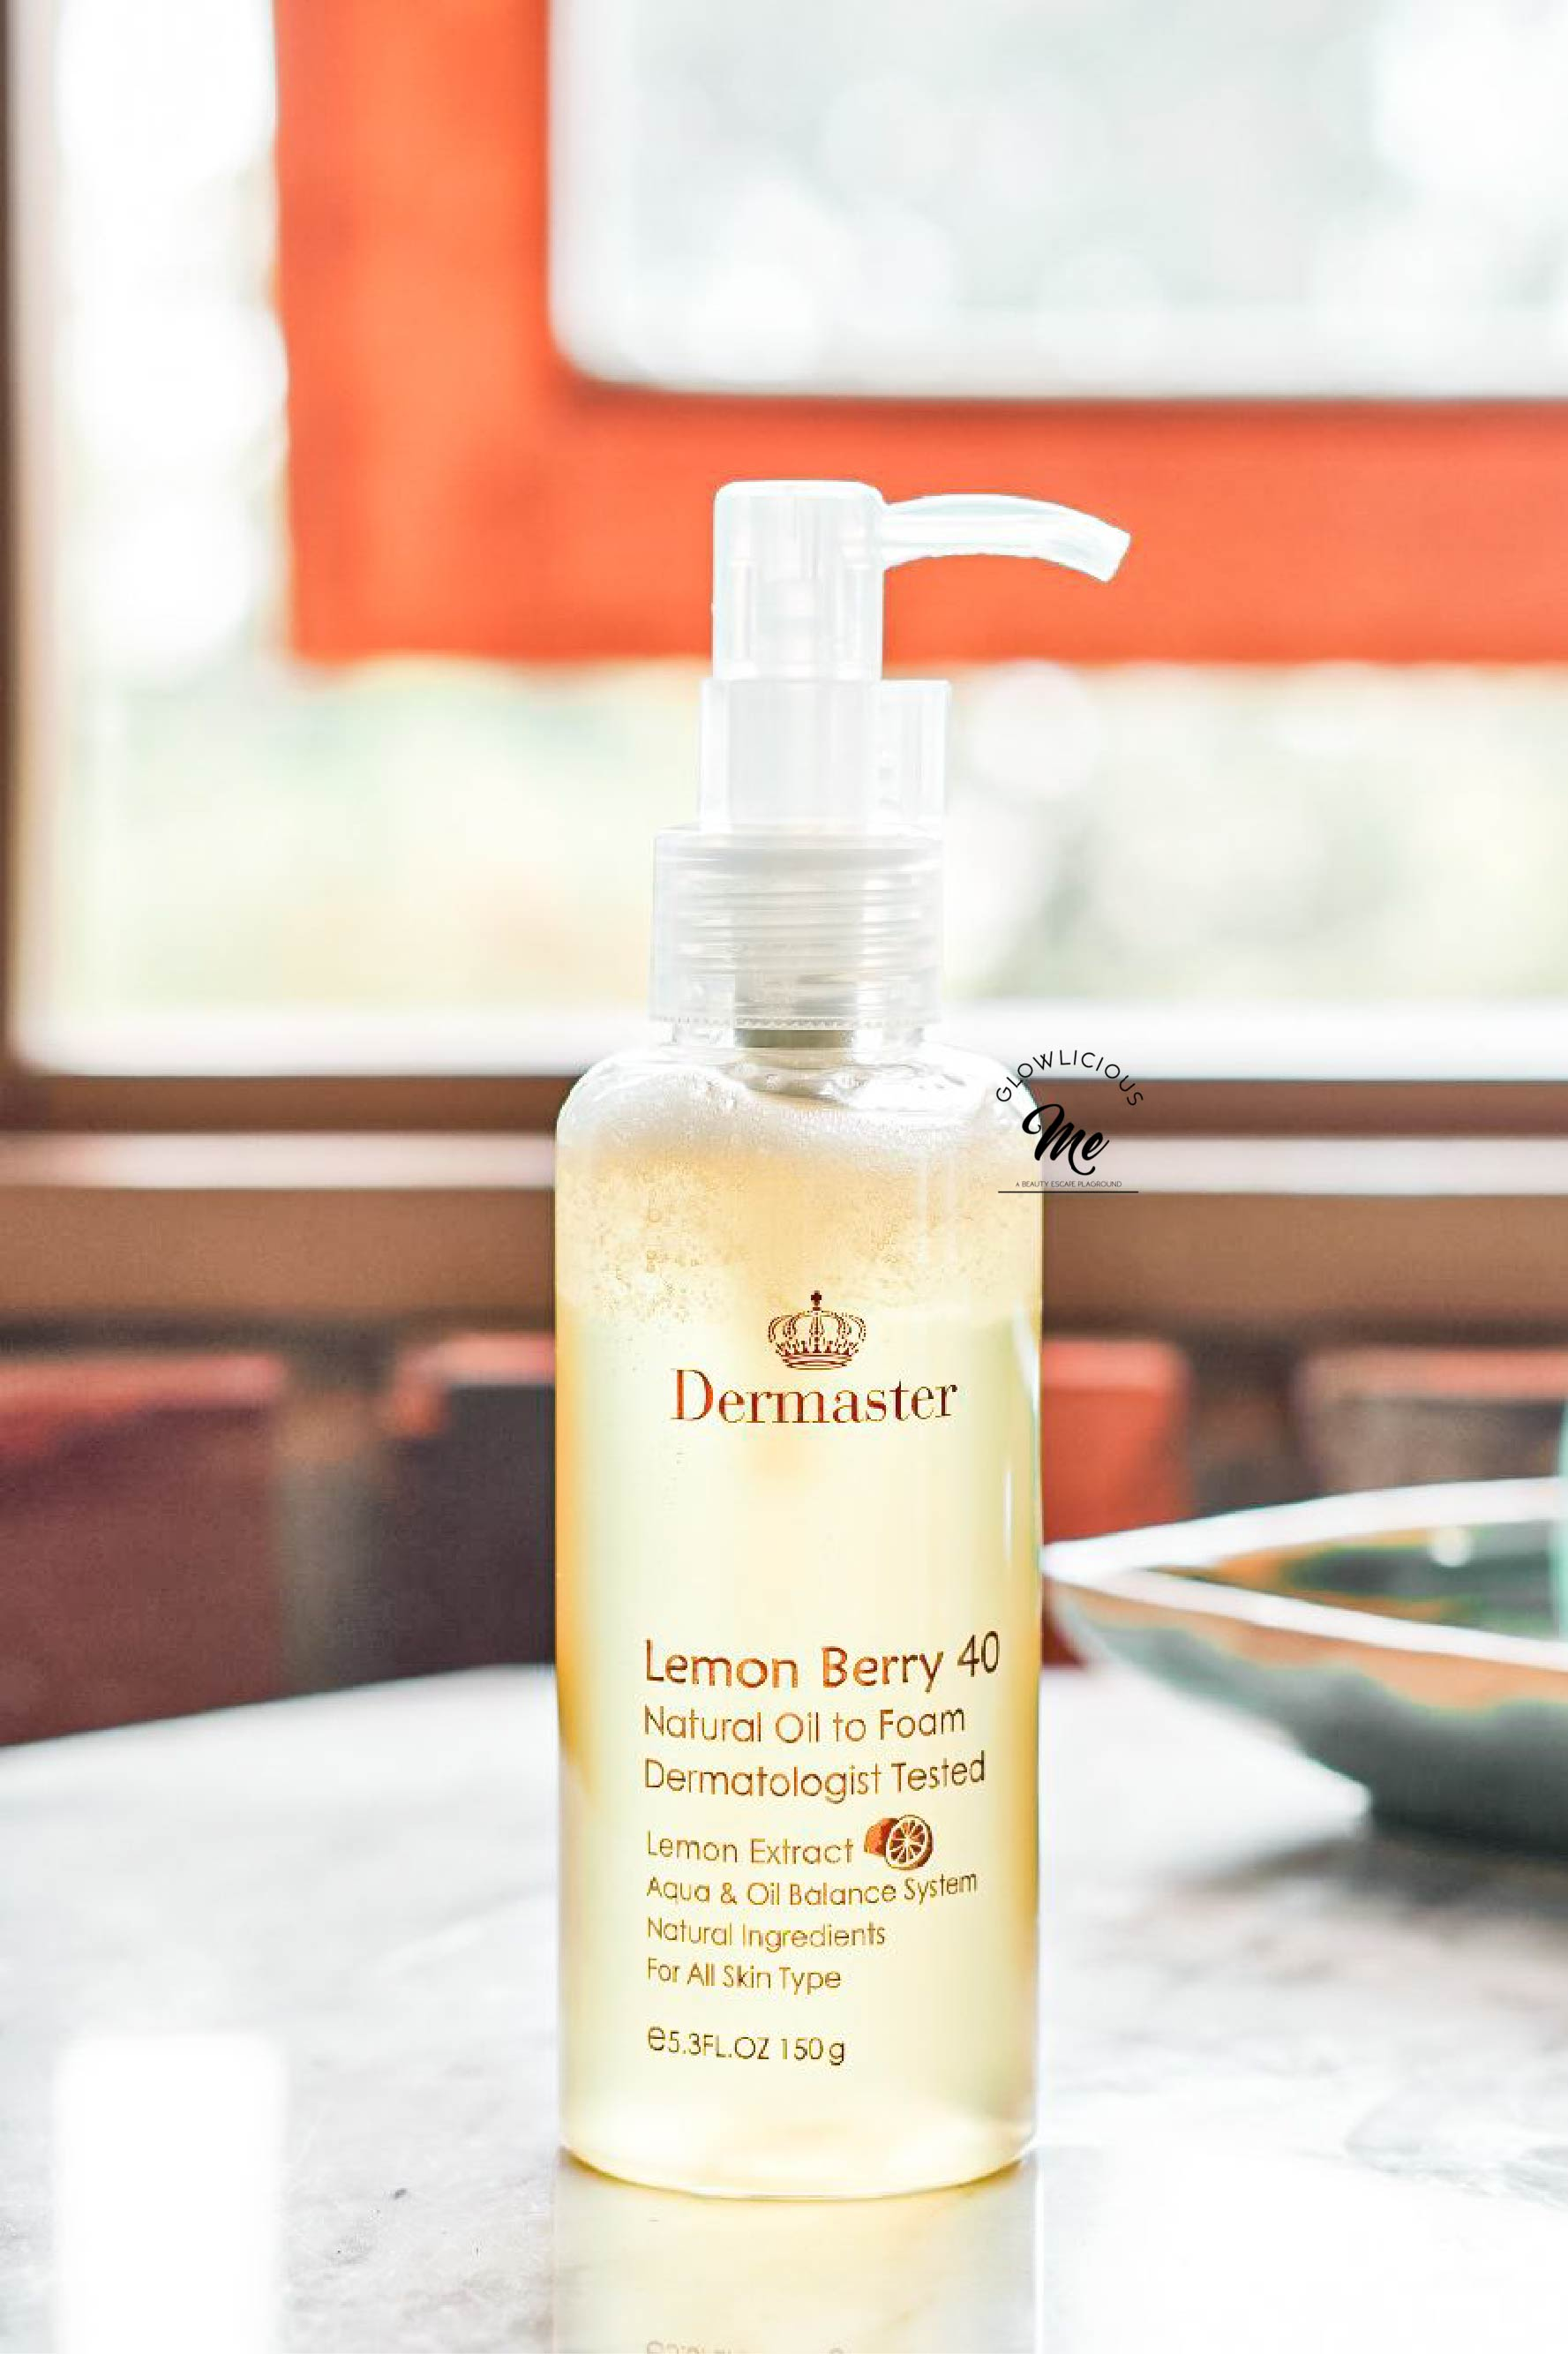 #GlowliciousMeFeatured – Dermaster Skincare - Review Dermaster Oil to Foam 2 In 1